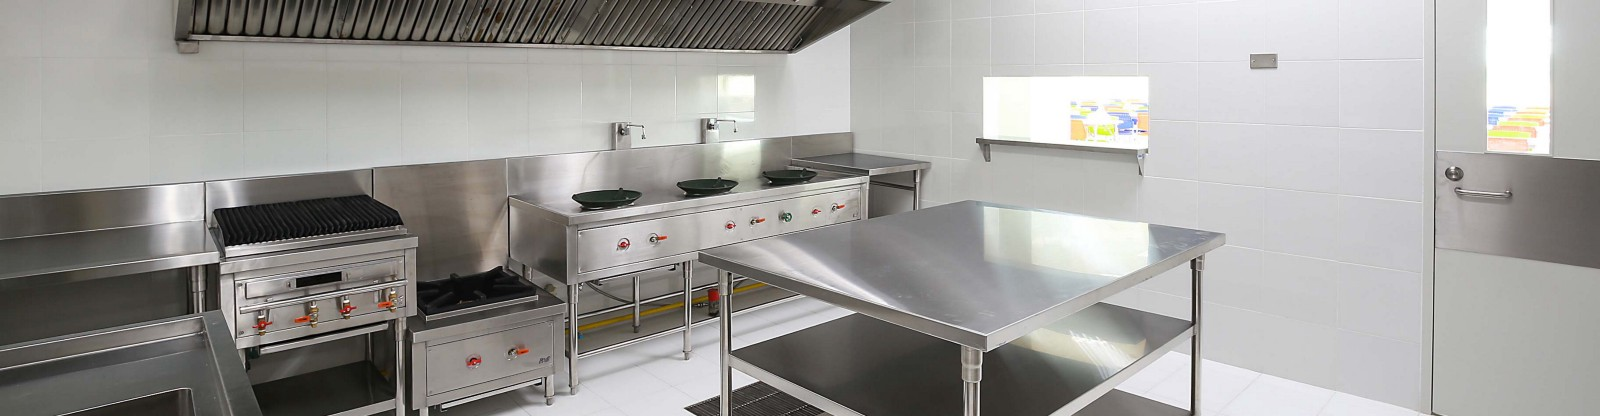 Commercial Kitchen Cleaning Services – ACS UK – Medium